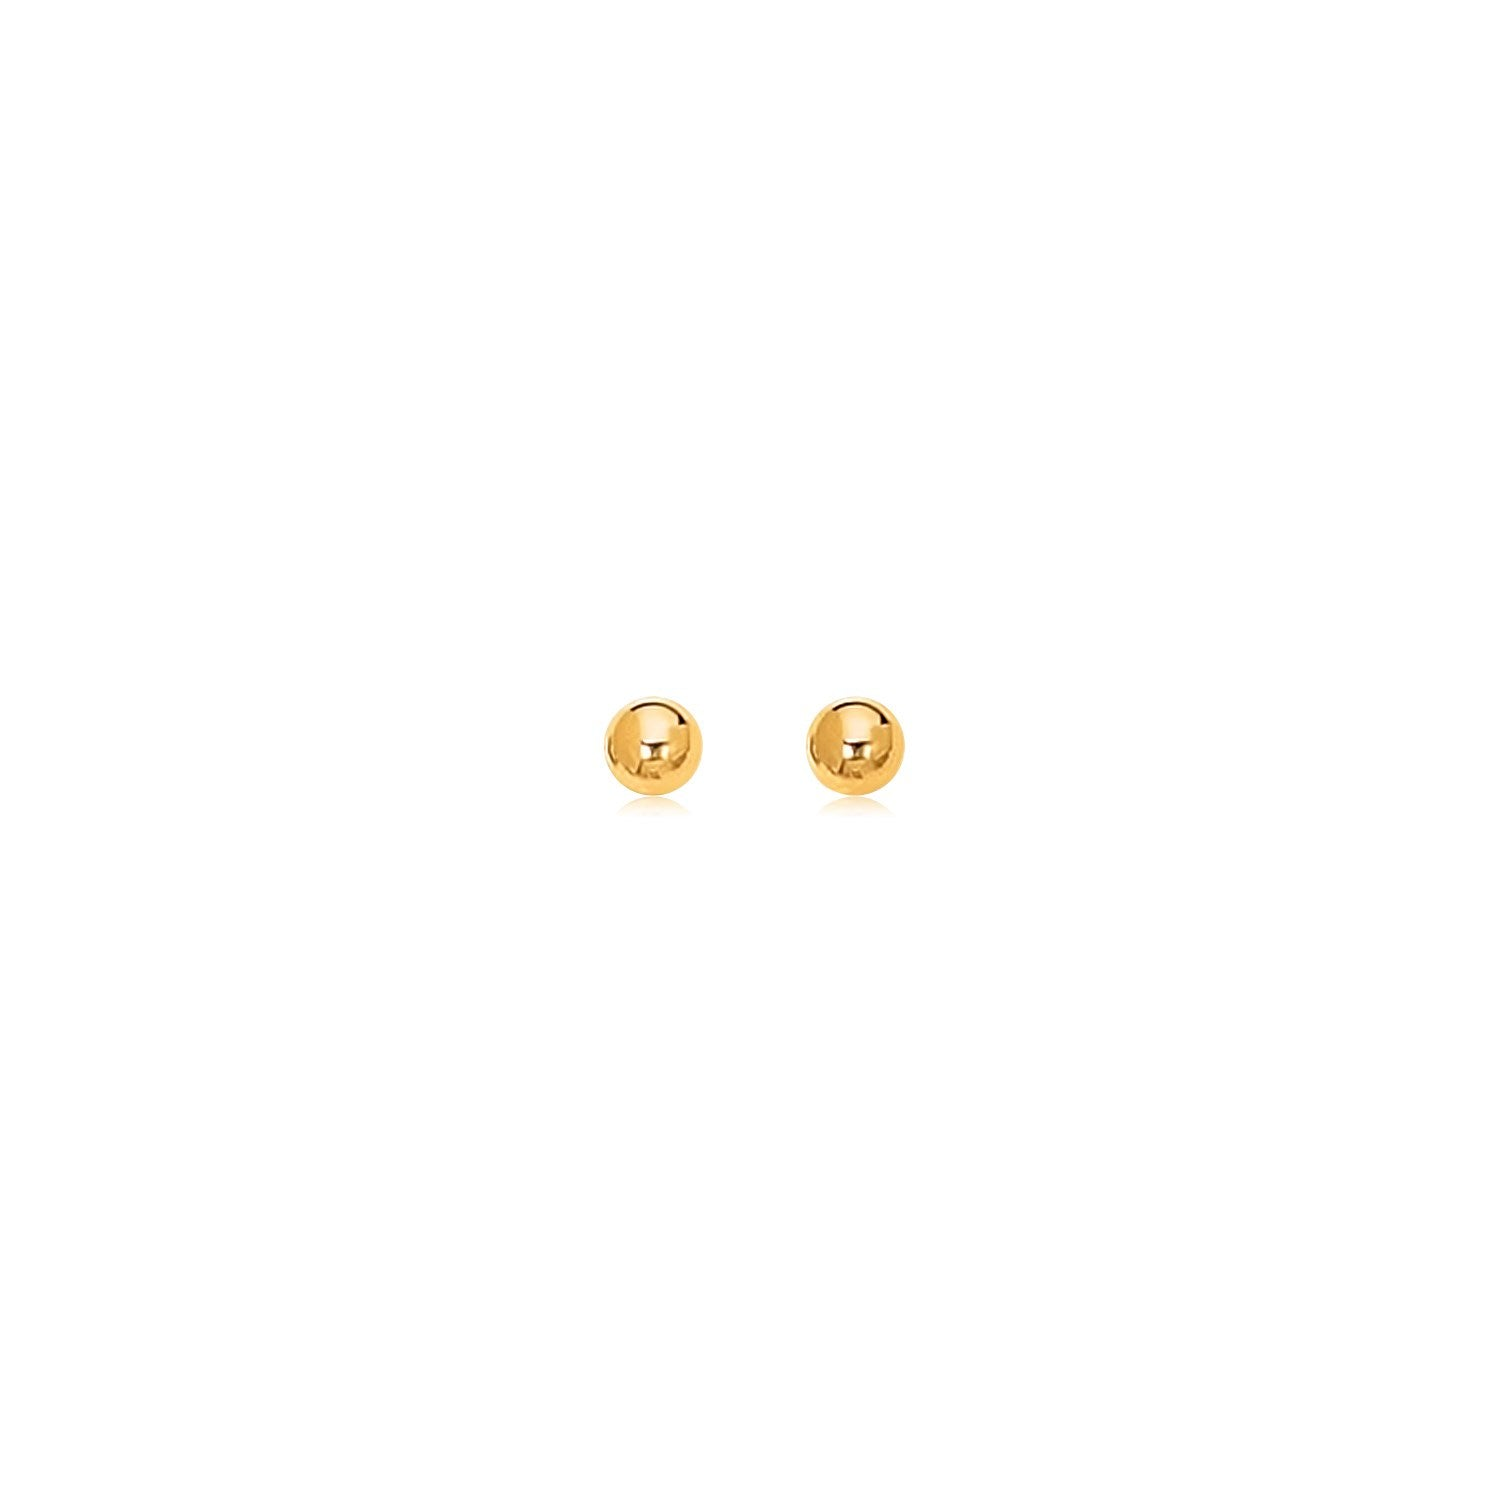 14K Yellow Gold Polished Round Stud Earrings